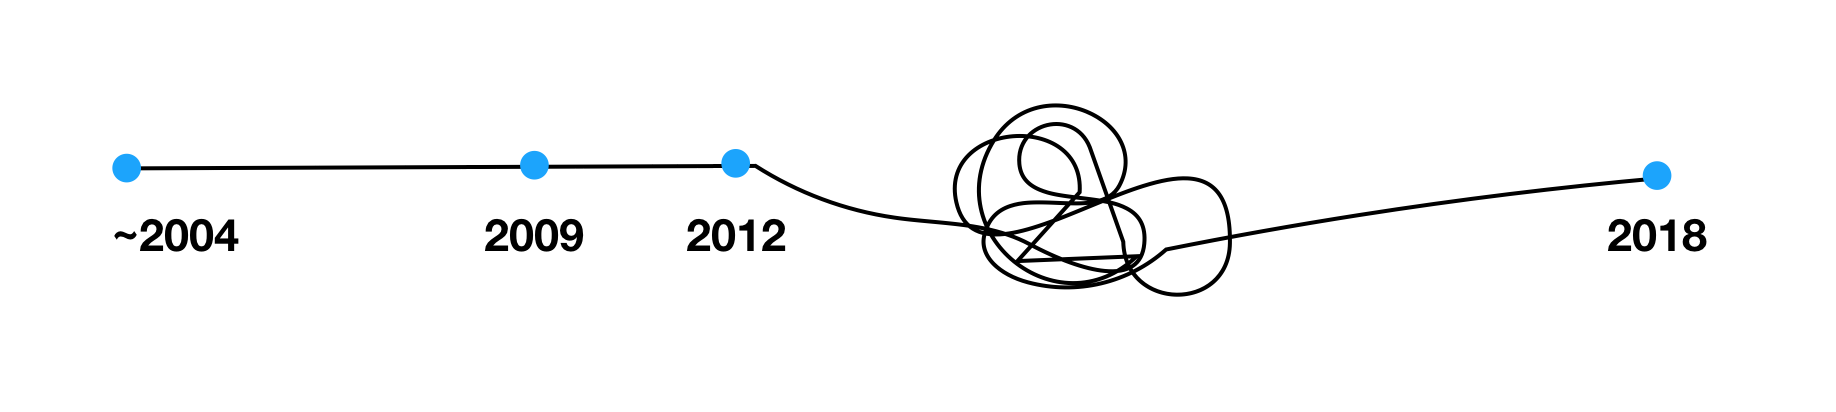 Timeline view from 2004 to 2018. After 2012 the line goes down and a scribble happens between 2012 and 2018